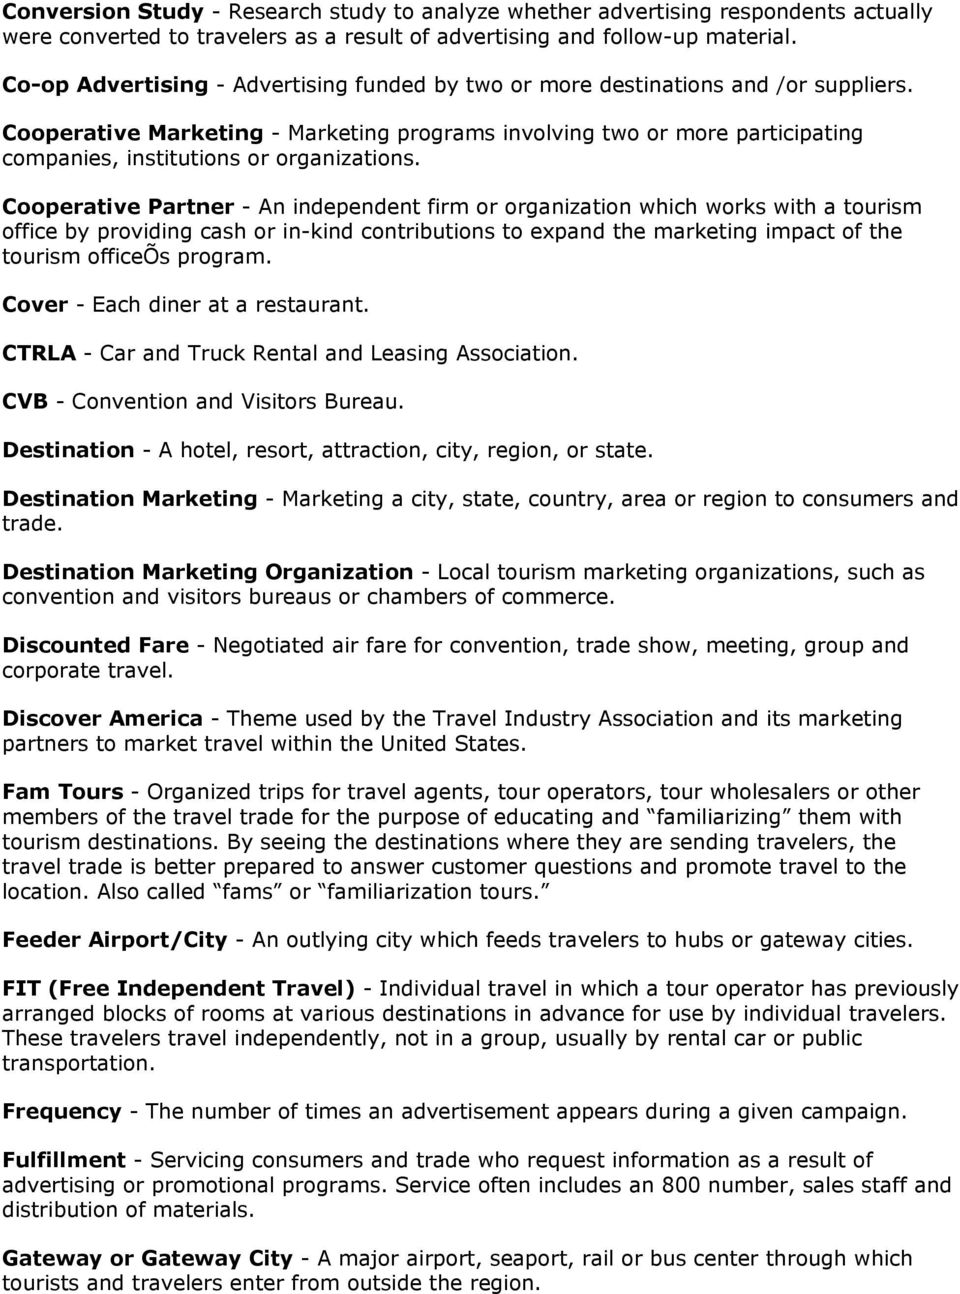 Cooperative Marketing - Marketing programs involving two or more participating companies, institutions or organizations.